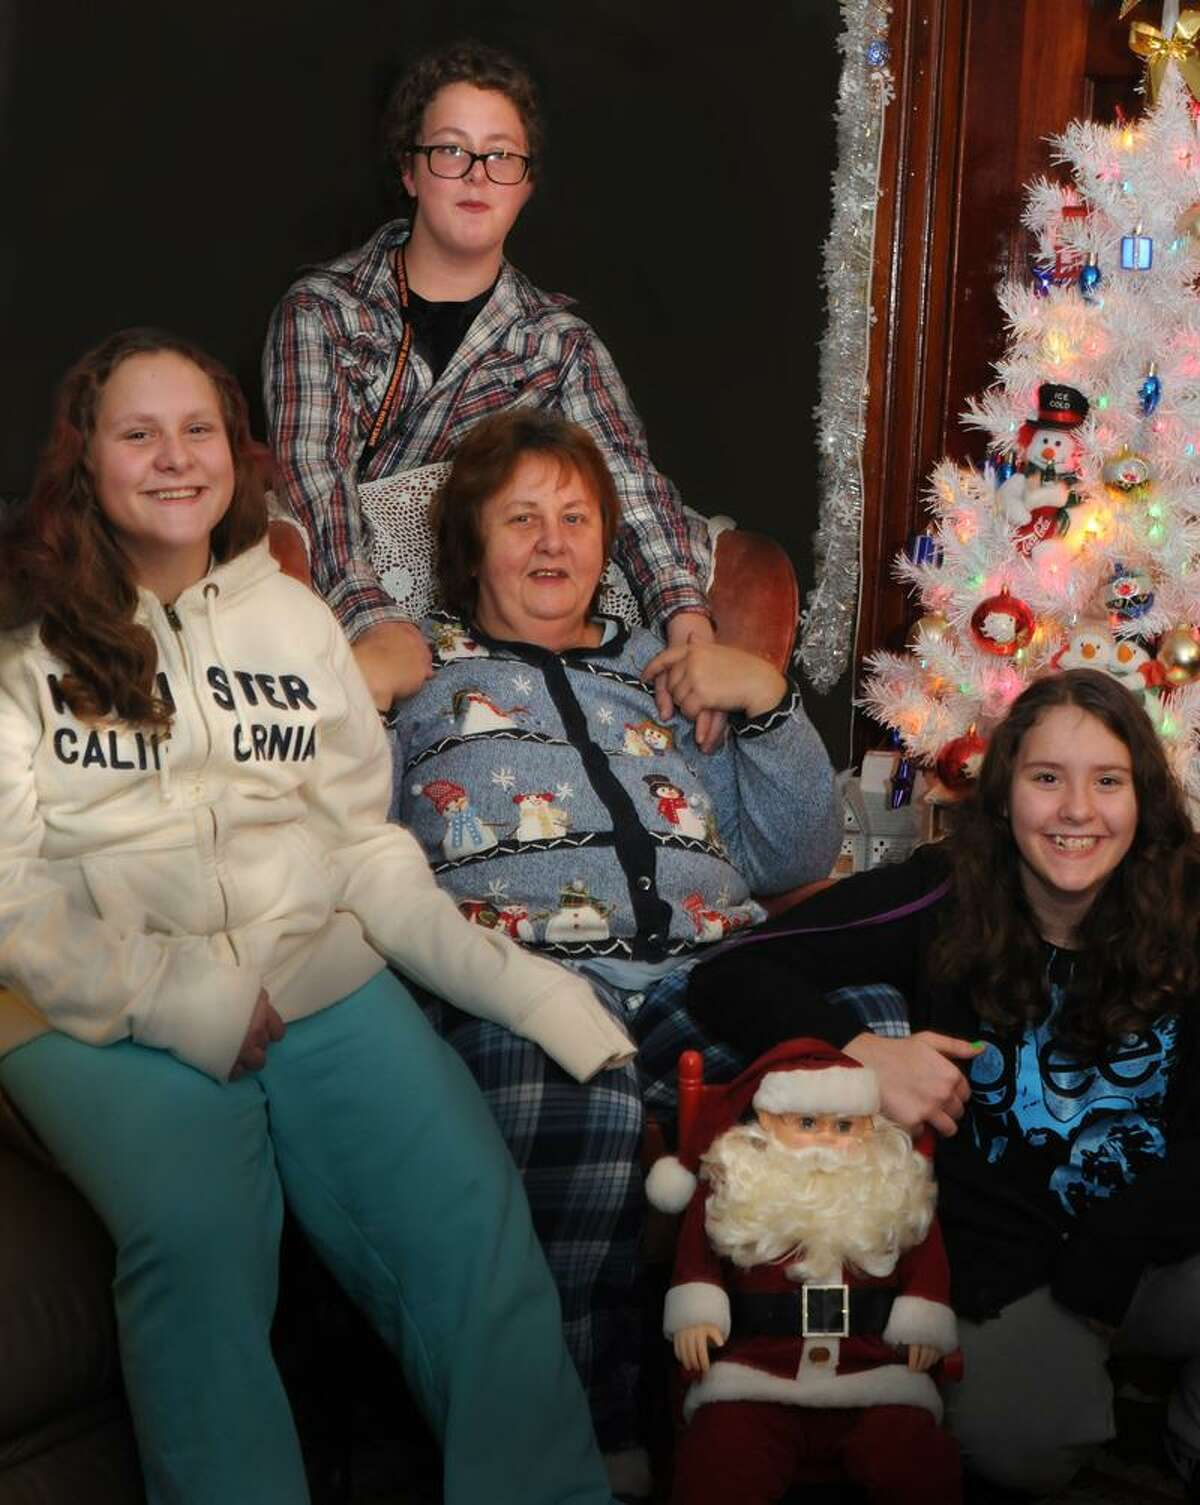 Melanie Stengel/Register Single mother Joyce Mueller's family of Shelton needs a holiday gift as she recuperates from breast cancer surgeries. She is unable to work while she also caring for her special needs triplets, Nicole, Tommy, and Jessie, 13.